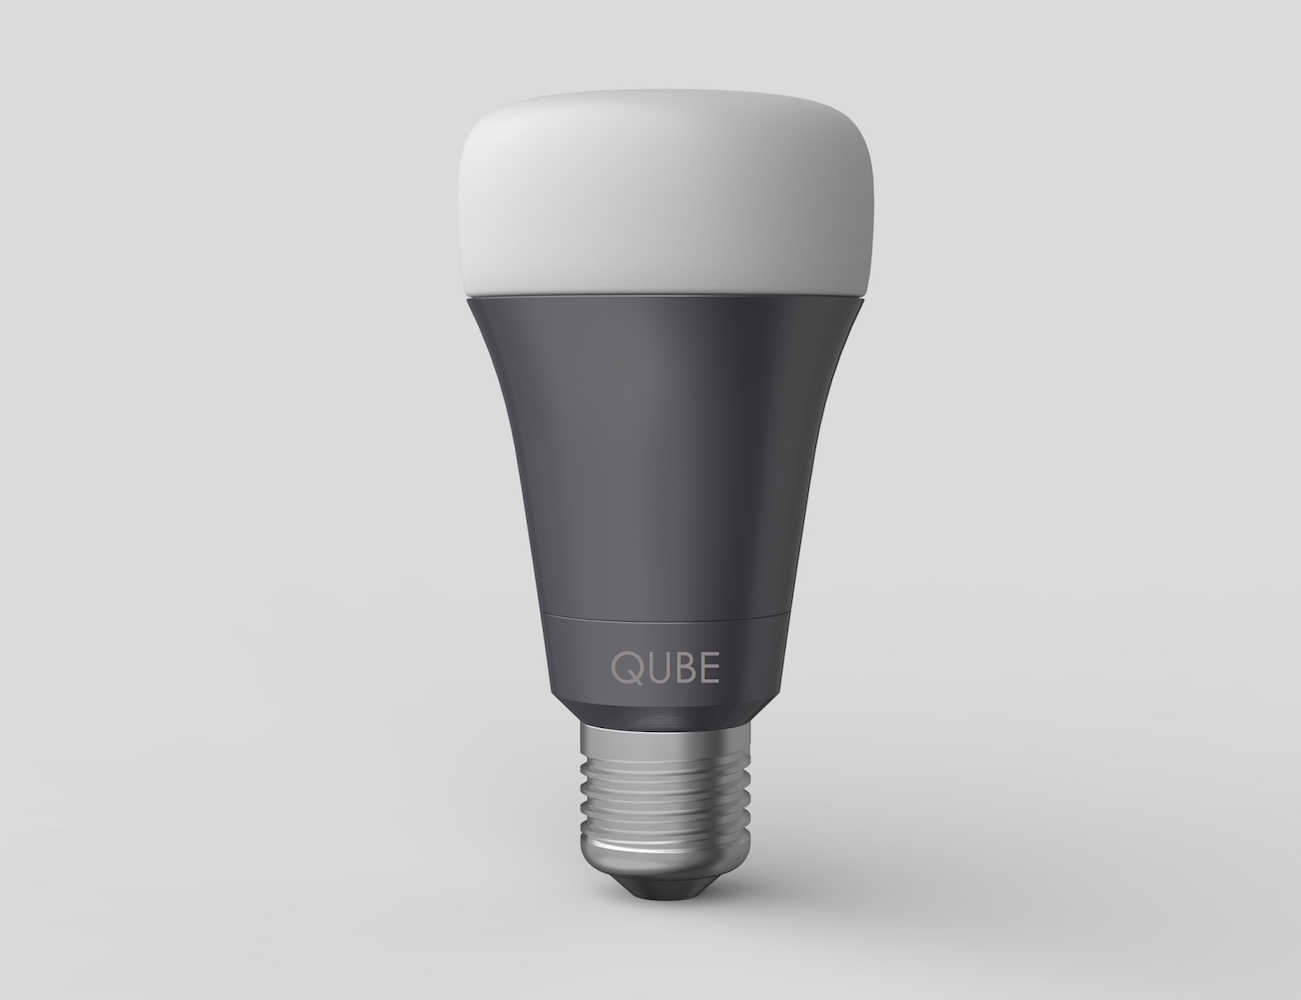 Qube – World's Most Affordable Wi-Fi Enabled, Multi-Color LED Smart Bulb For Your Home